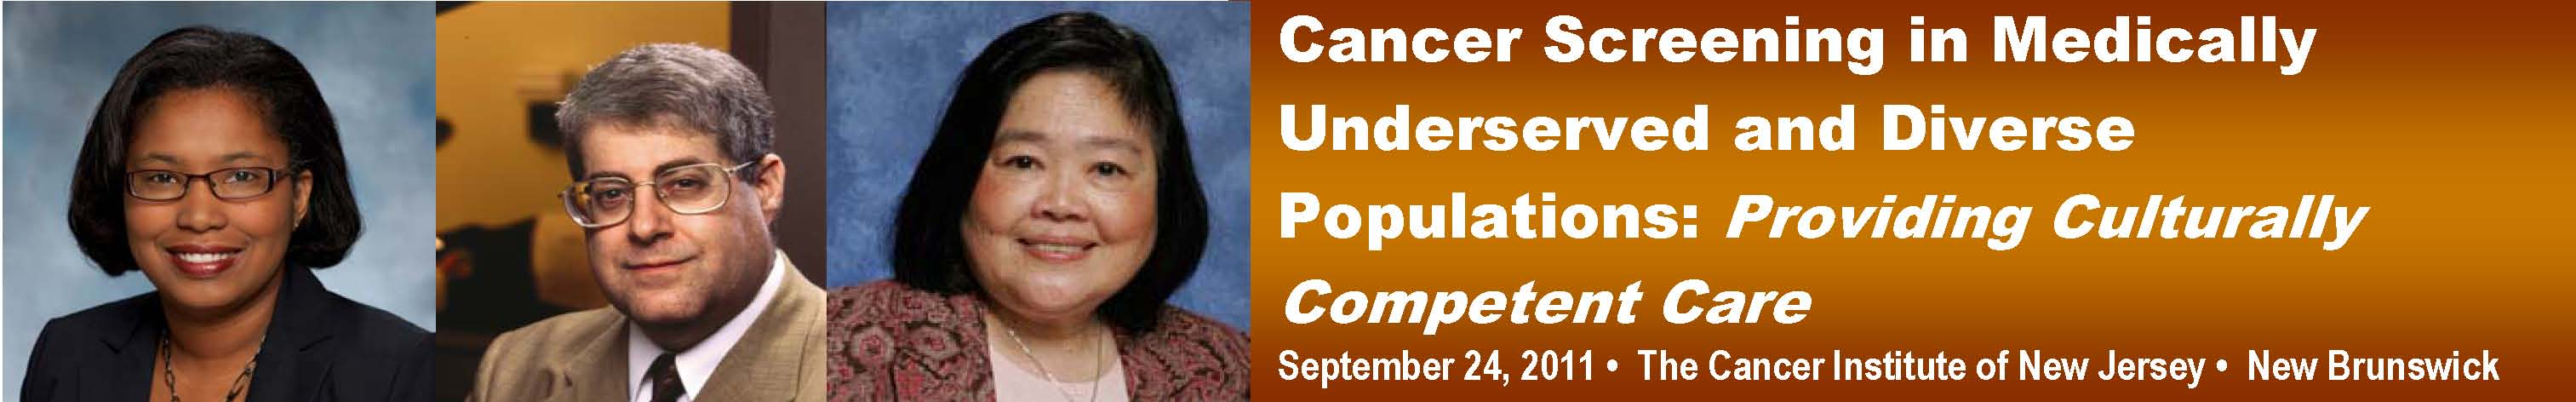 Cancer Screening in Medically Underserved and Diverse Populations: Providing Culturally Competent Care